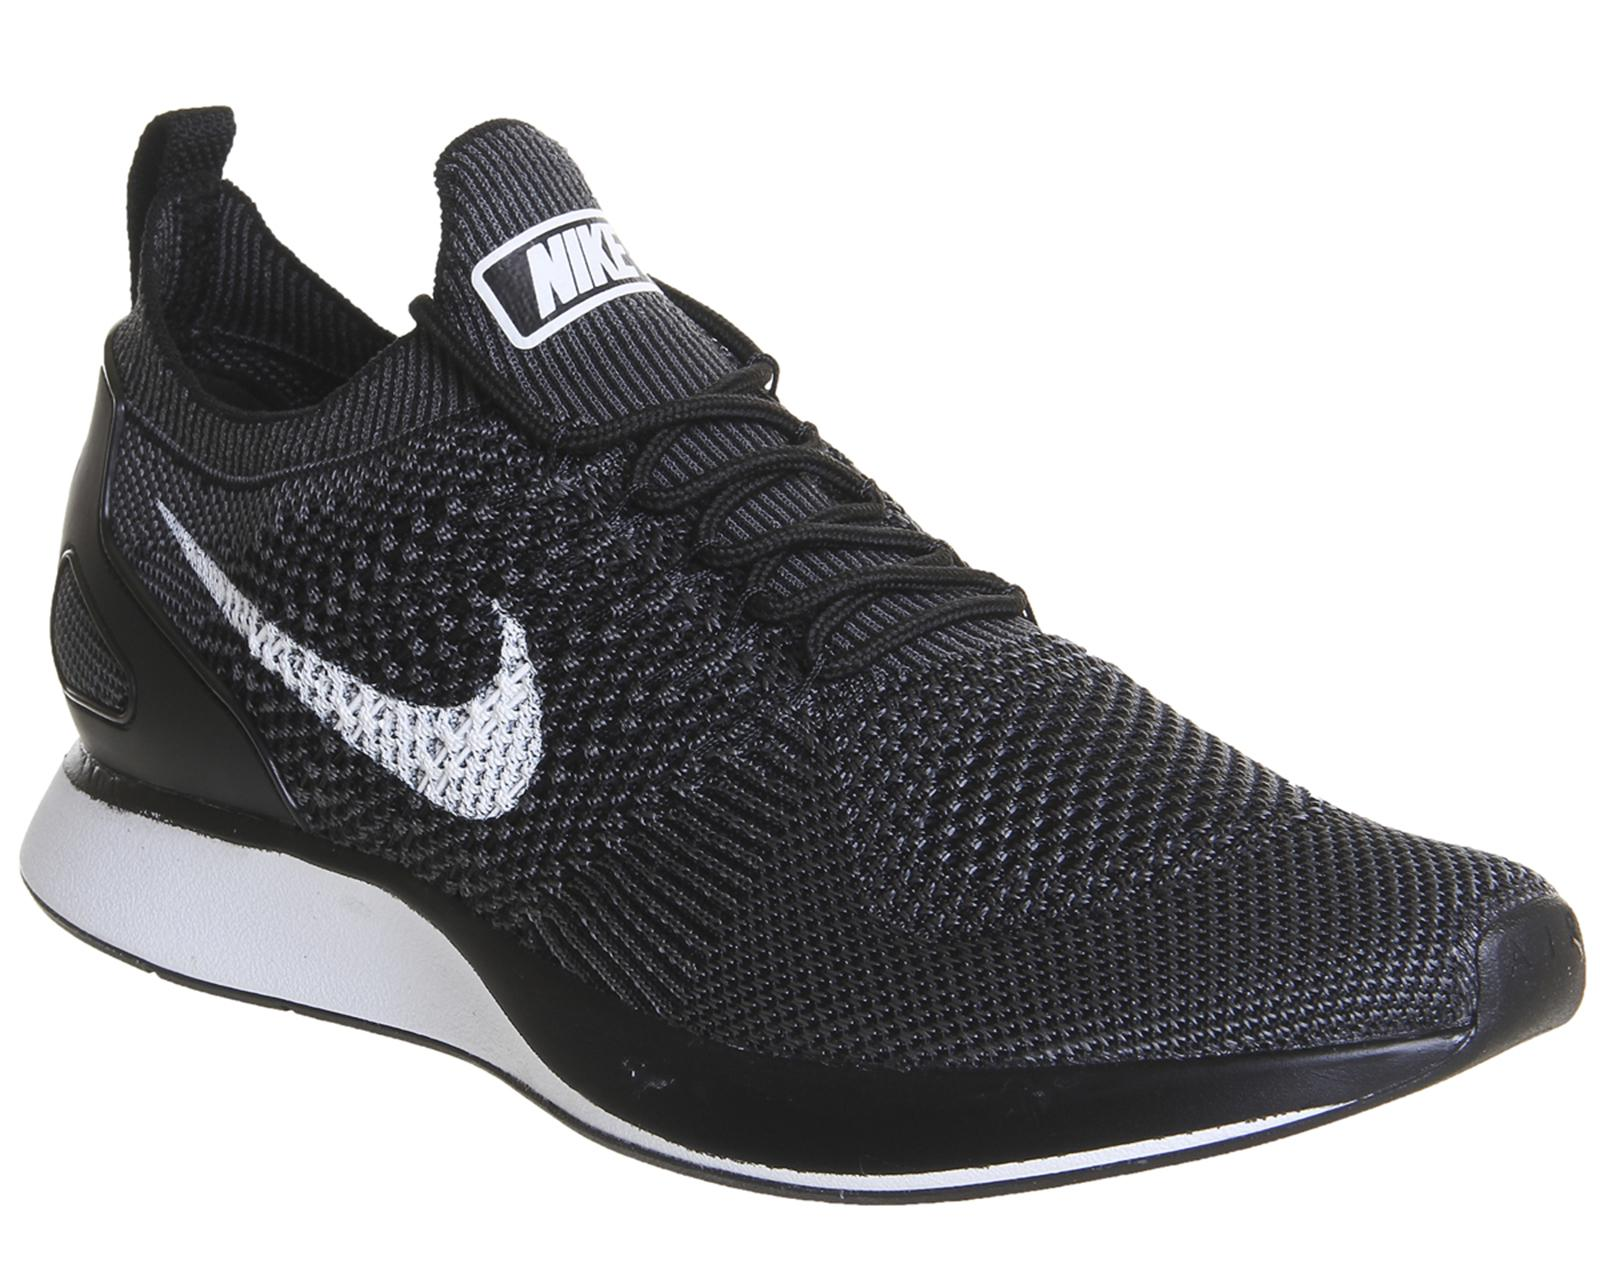 4e3f5e00f34bf Nike Air Zoom Mariah Fk Racer M in Black for Men - Save 39% - Lyst